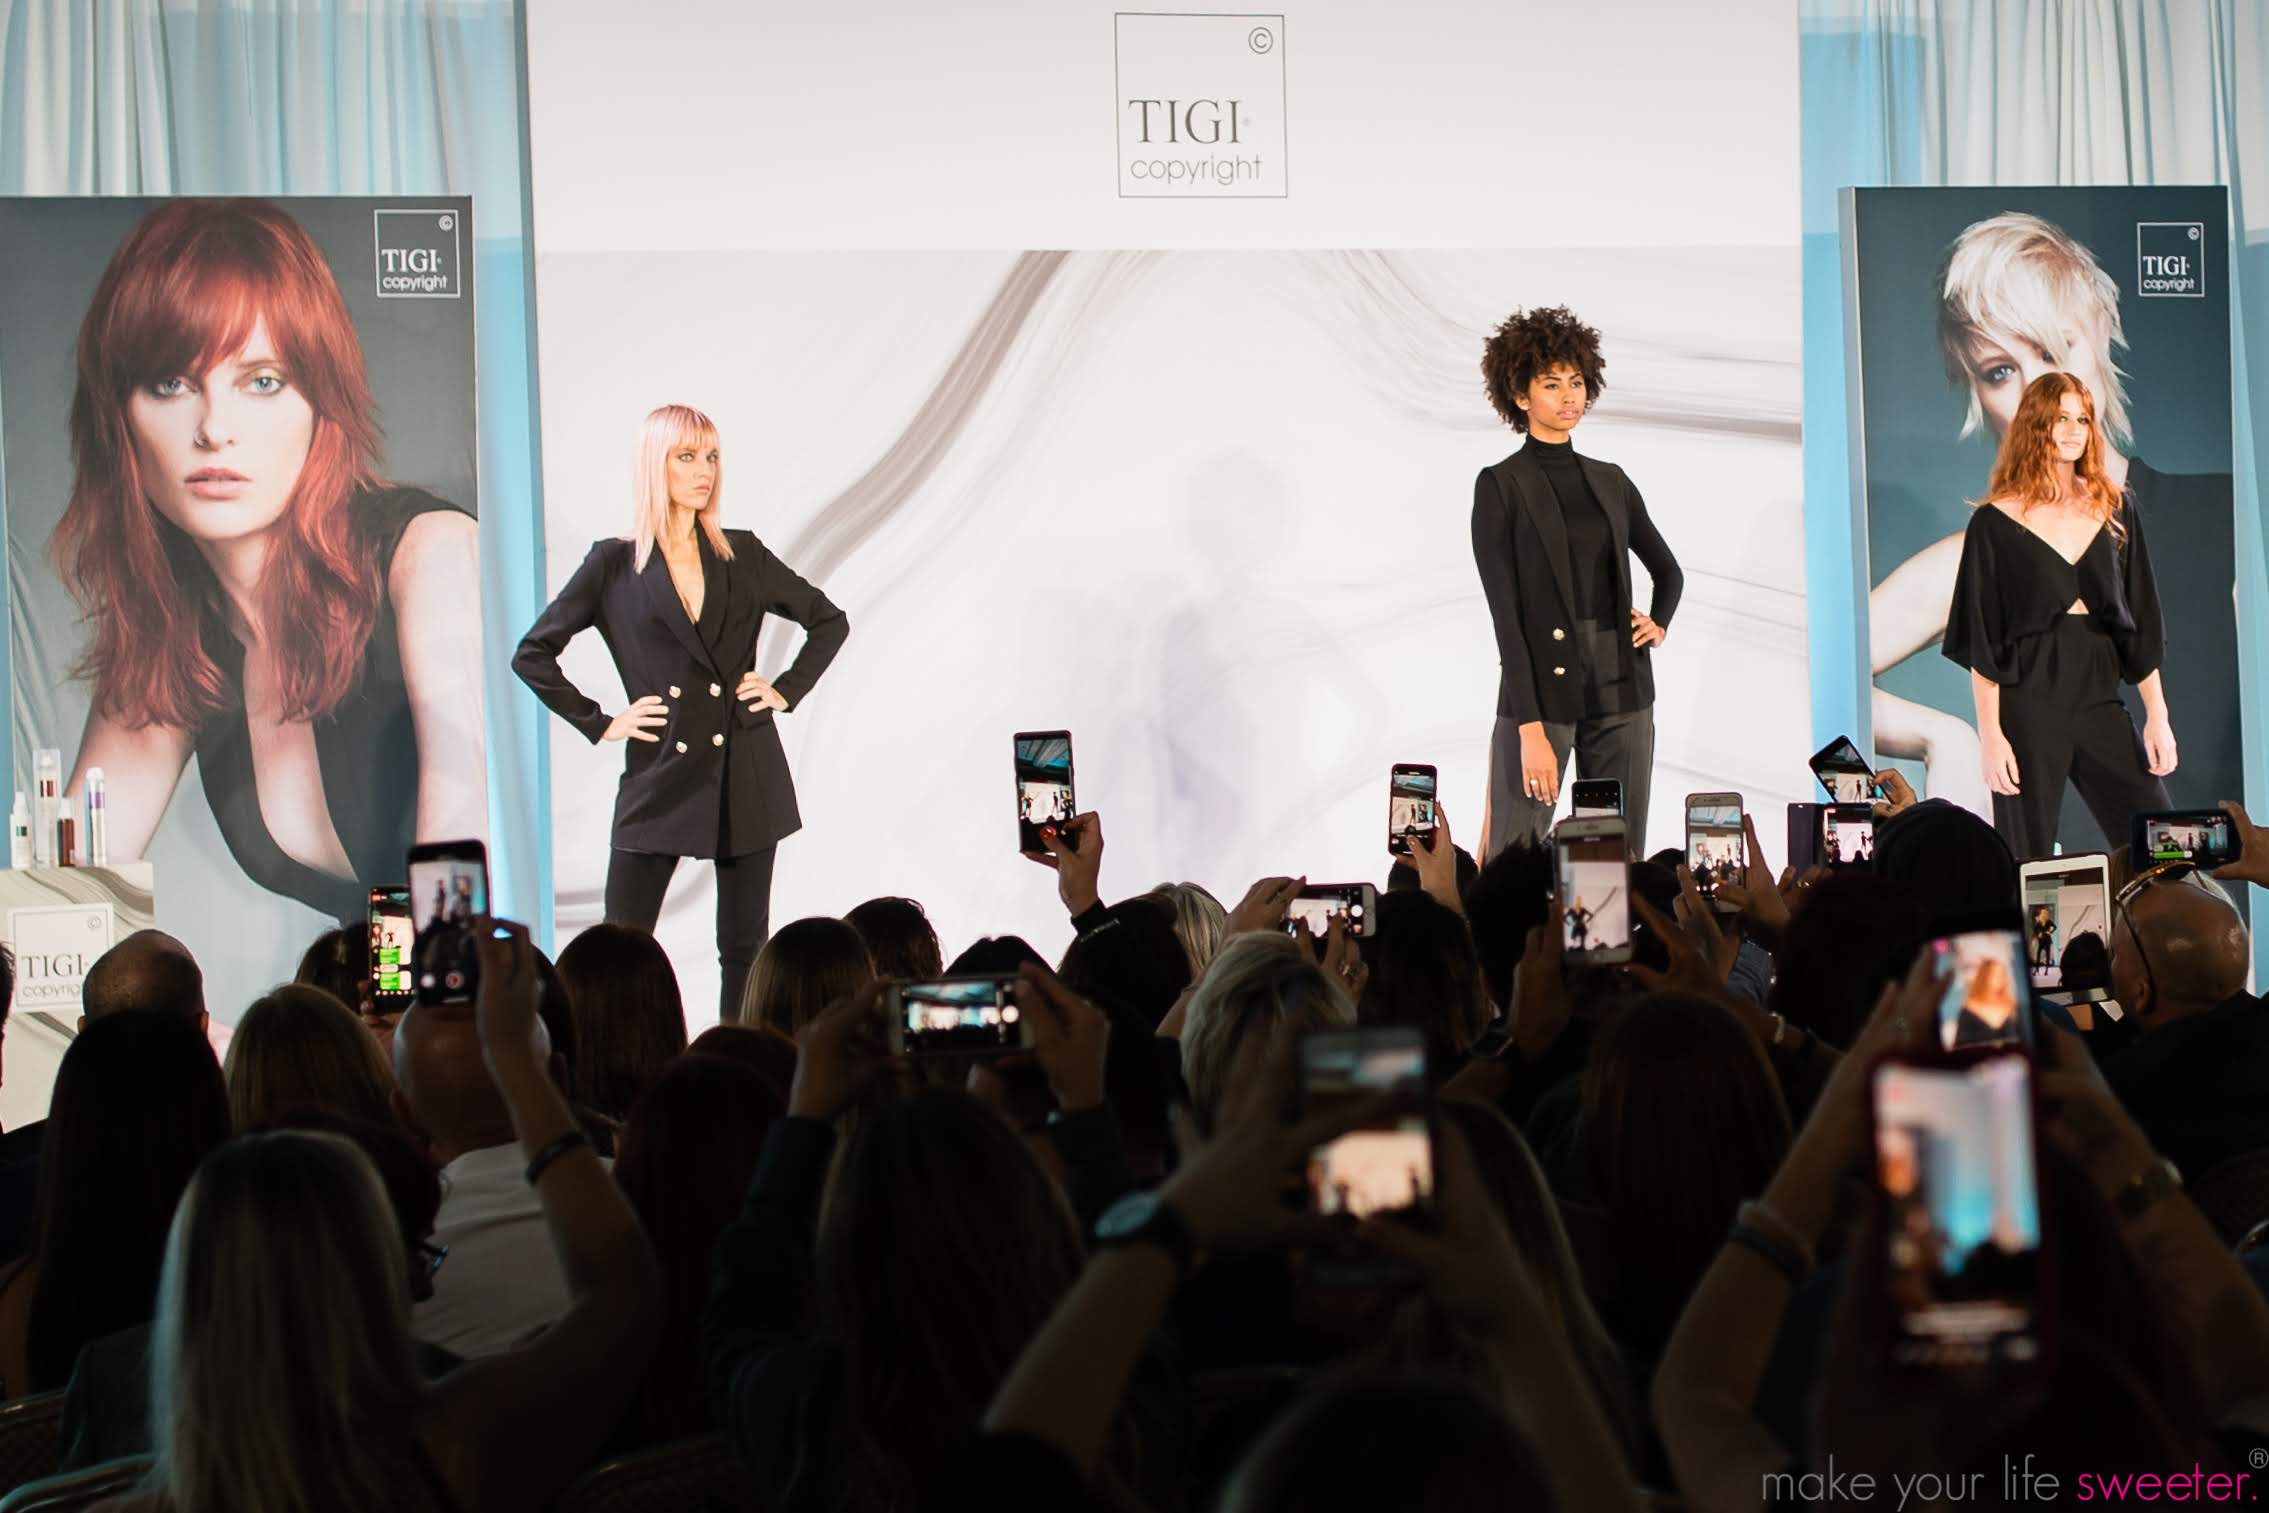 Make Your Life Sweeter Events - TIGI Copyright Event in Miami